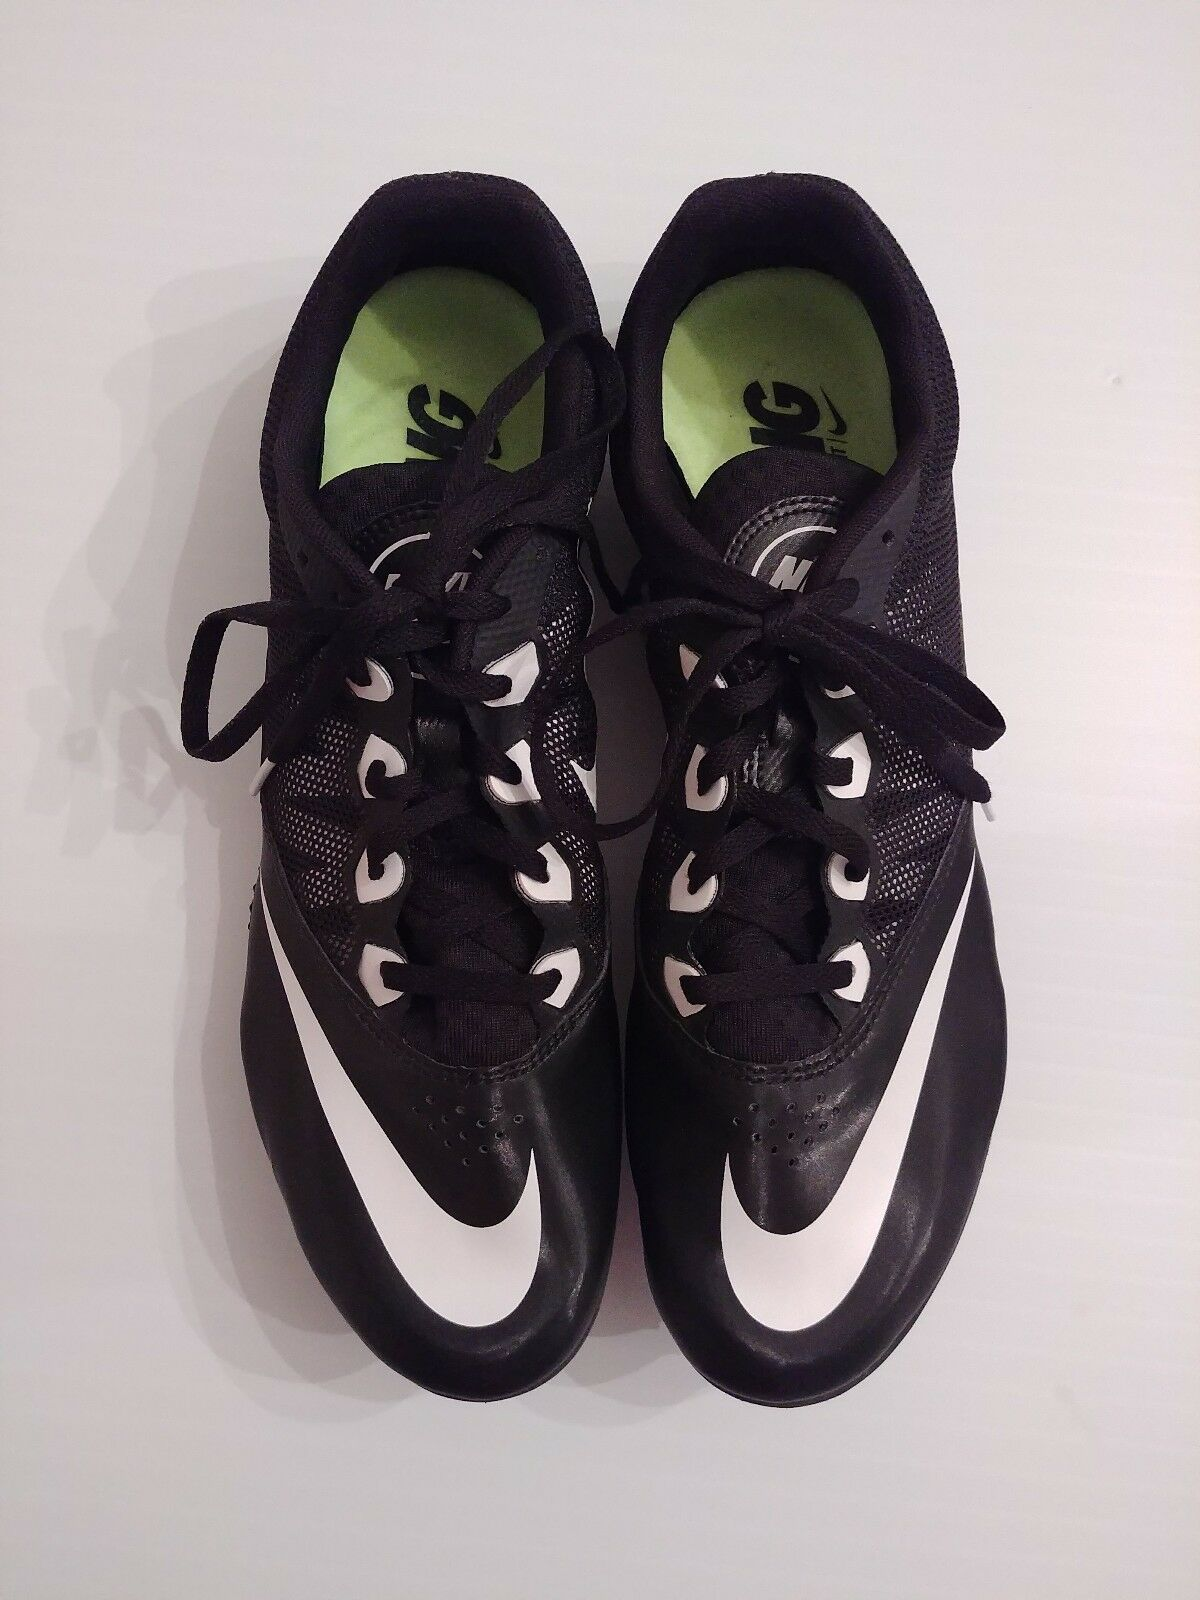 Nike Zoom rival s zapatos Track Sprint spikes 616313-001 Run Racing Sprint Track SZ 1nuevo c2ef74